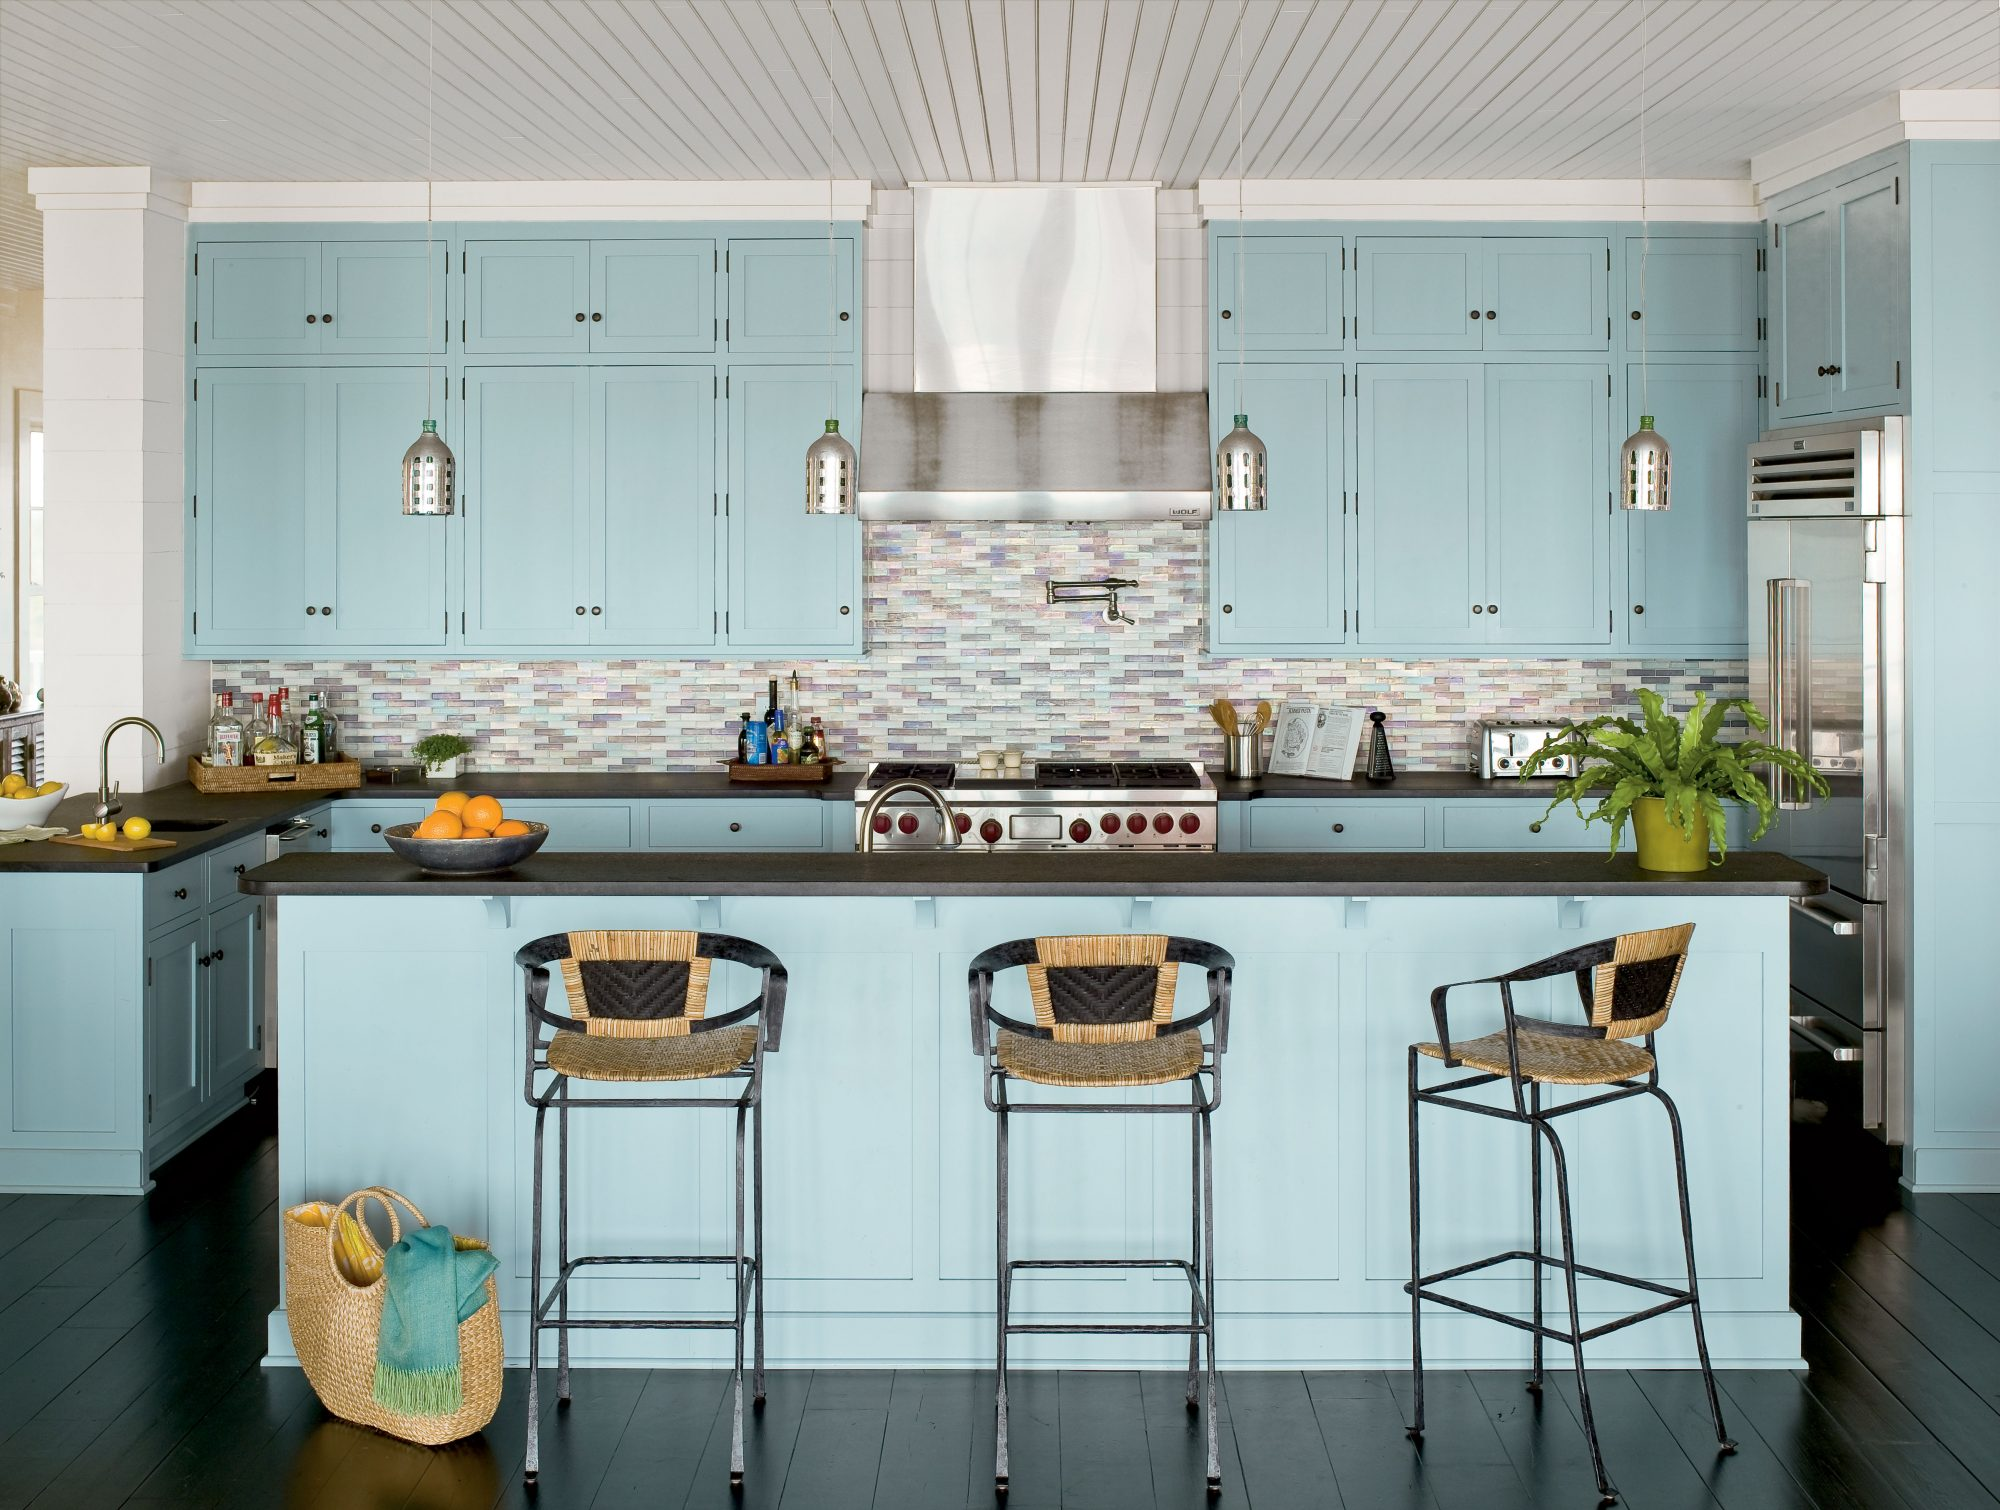 This kitchen's stainless steel appliances and dark surfaces are expertly balanced by the pale blue cabinetry and sea-inspired backsplash. The iridescent tiles in various cerulean shades catch the light beautifully and led to a similar scheme for the rest of the house.